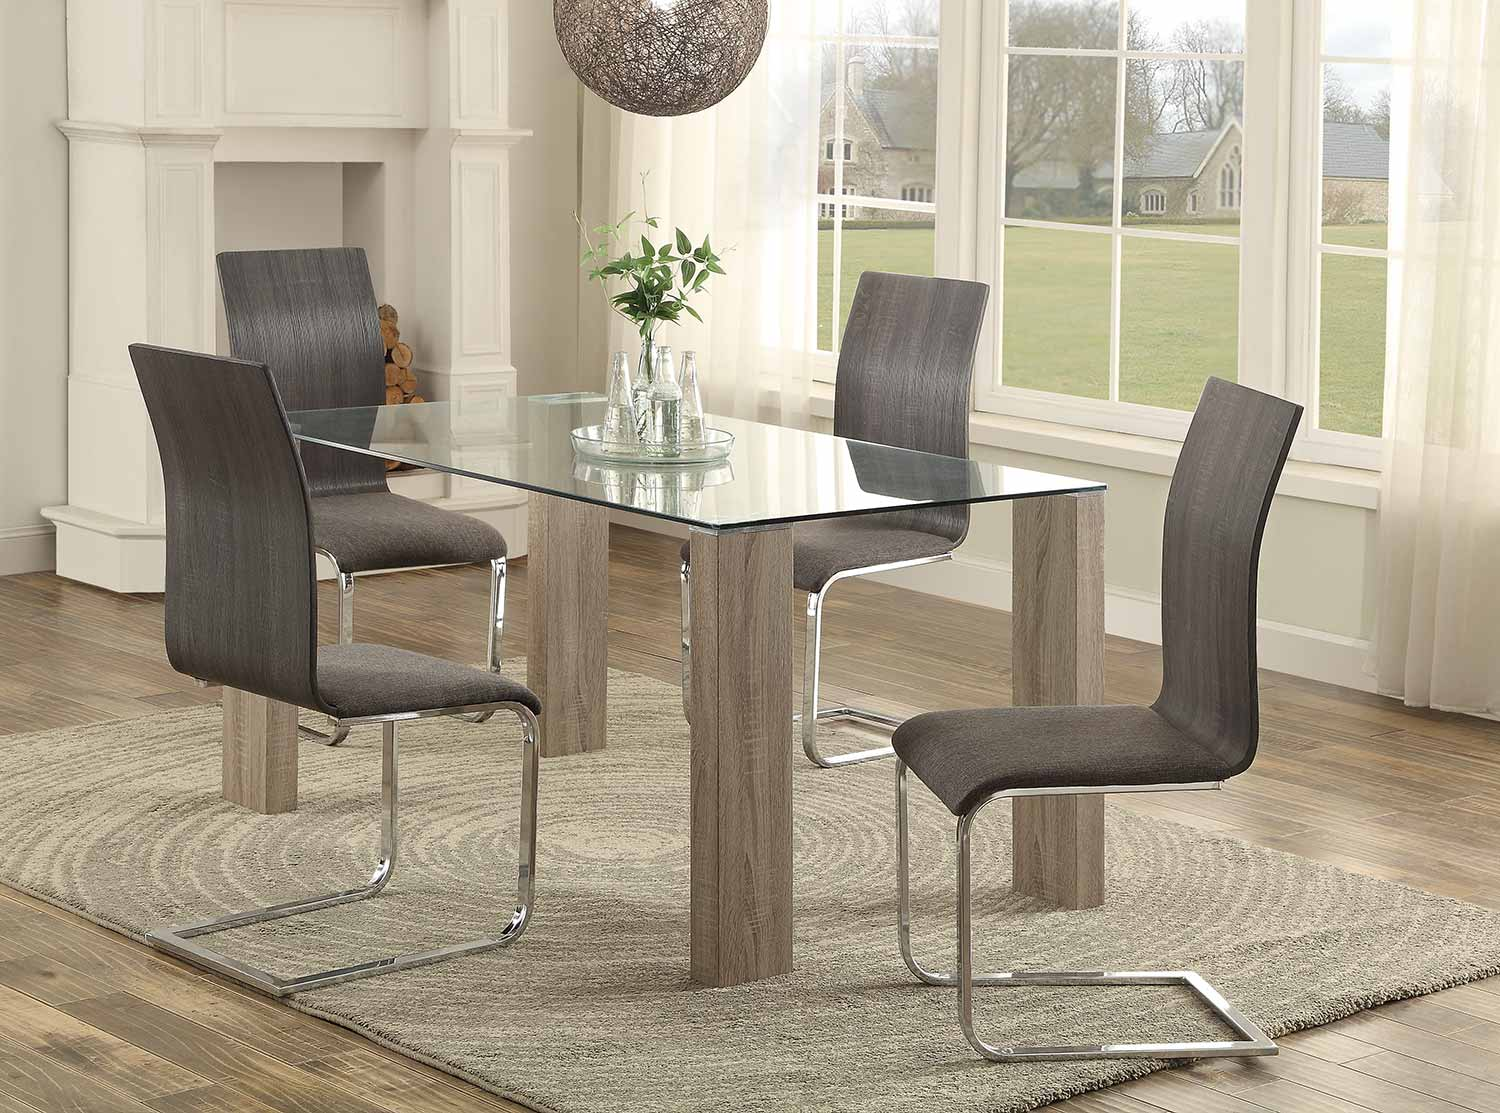 Homelegance Zeba Dining Set - Weathered Wood